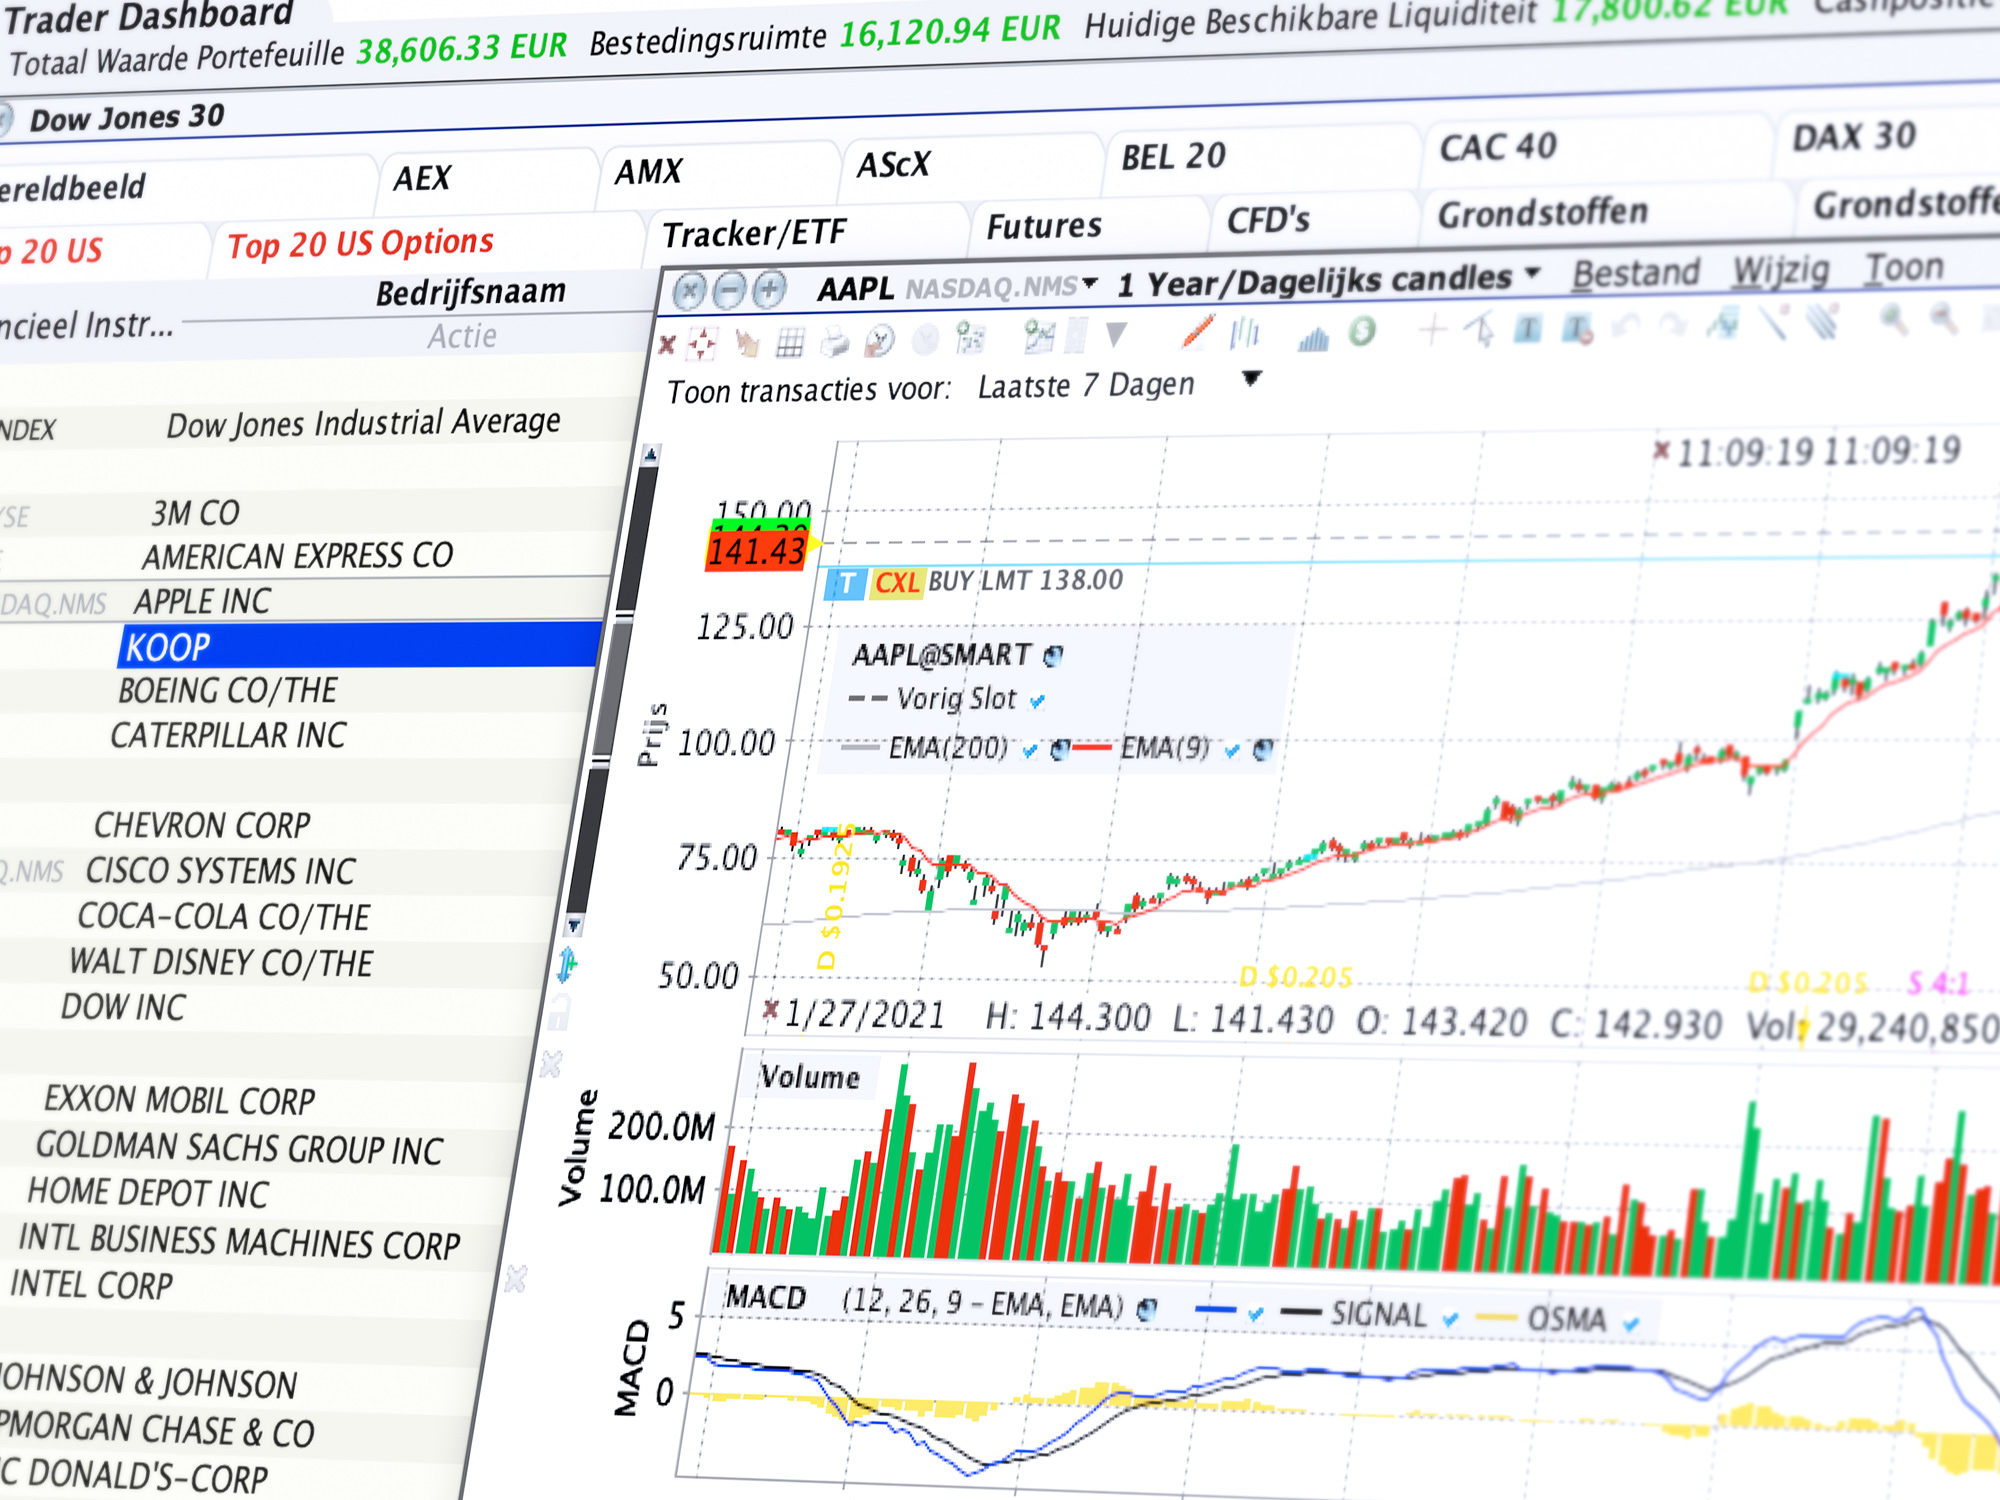 Trading Software: Trading Tools